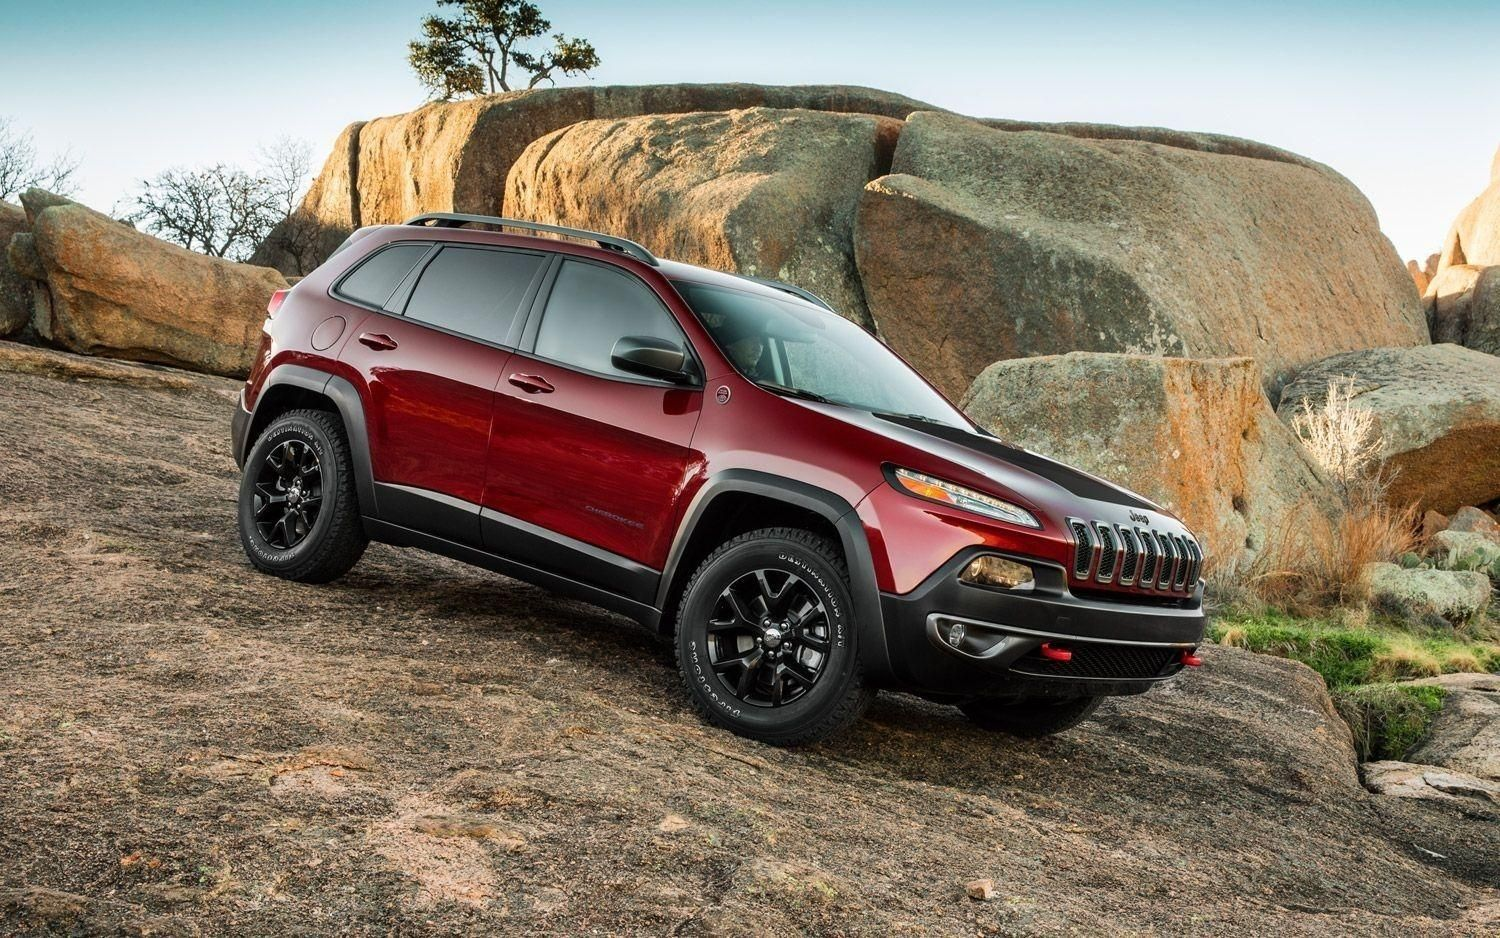 2019 Jeep Cherokee Mpg Release Date And Specs   Car 2018 / 2019 Intended  For 2019 Jeep Cherokee Mpg Review, Specs And Release Date